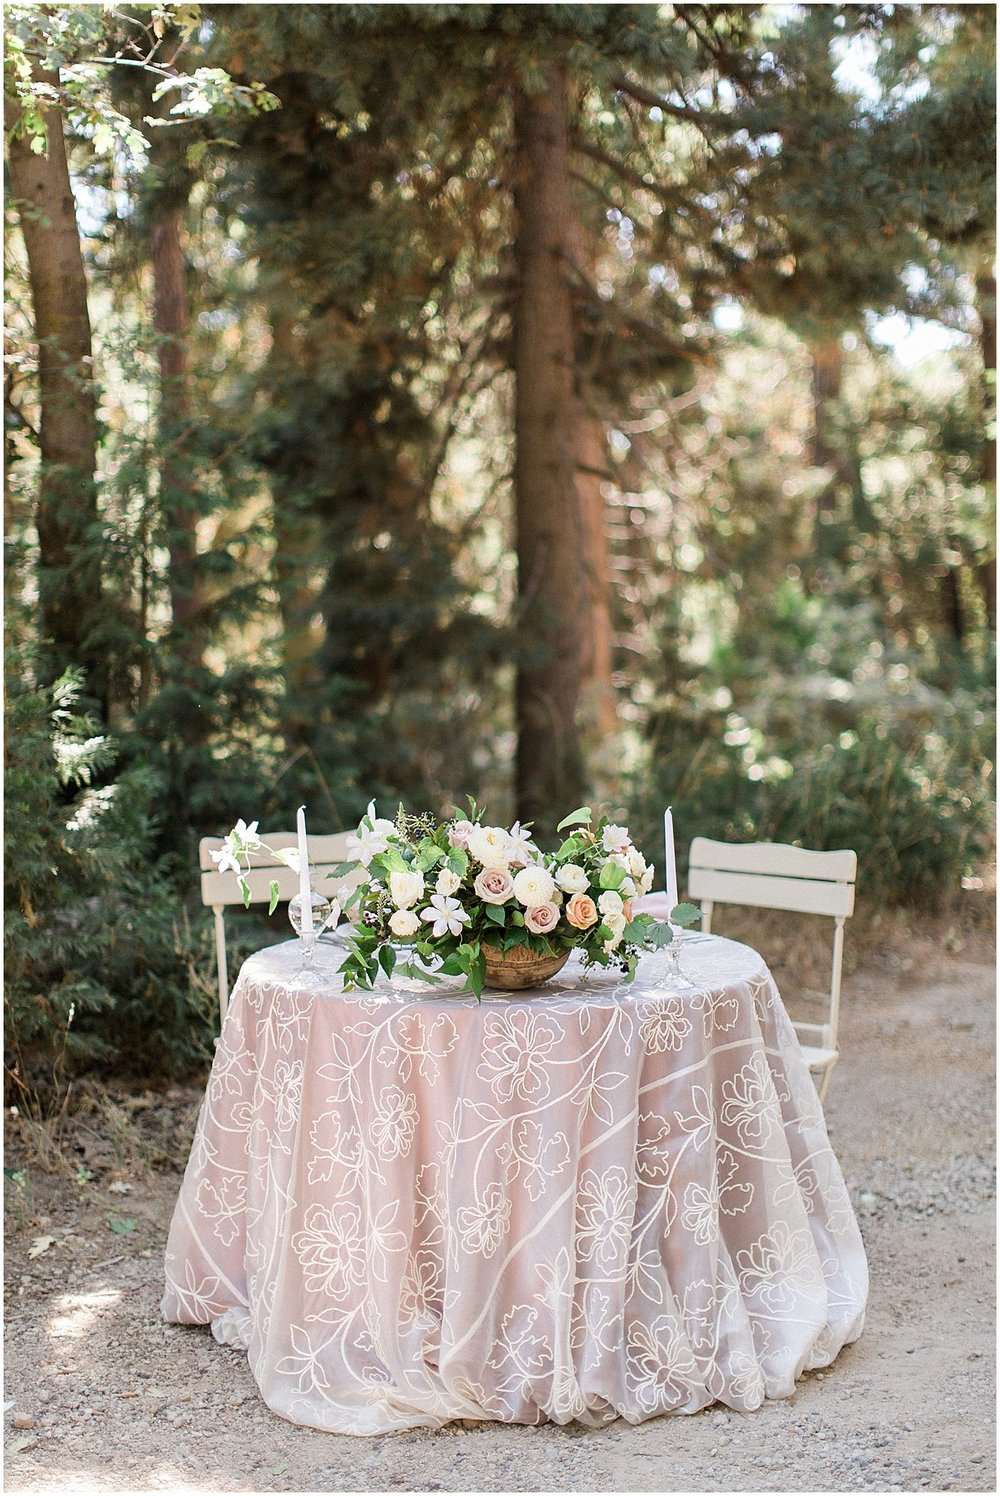 Romantic Sweetheart Table with La Tavola Peony Linen & Garden Bistro Chairs featured on Style Me Pretty | Phoenix Wedding Planner | Megan Dileen Events